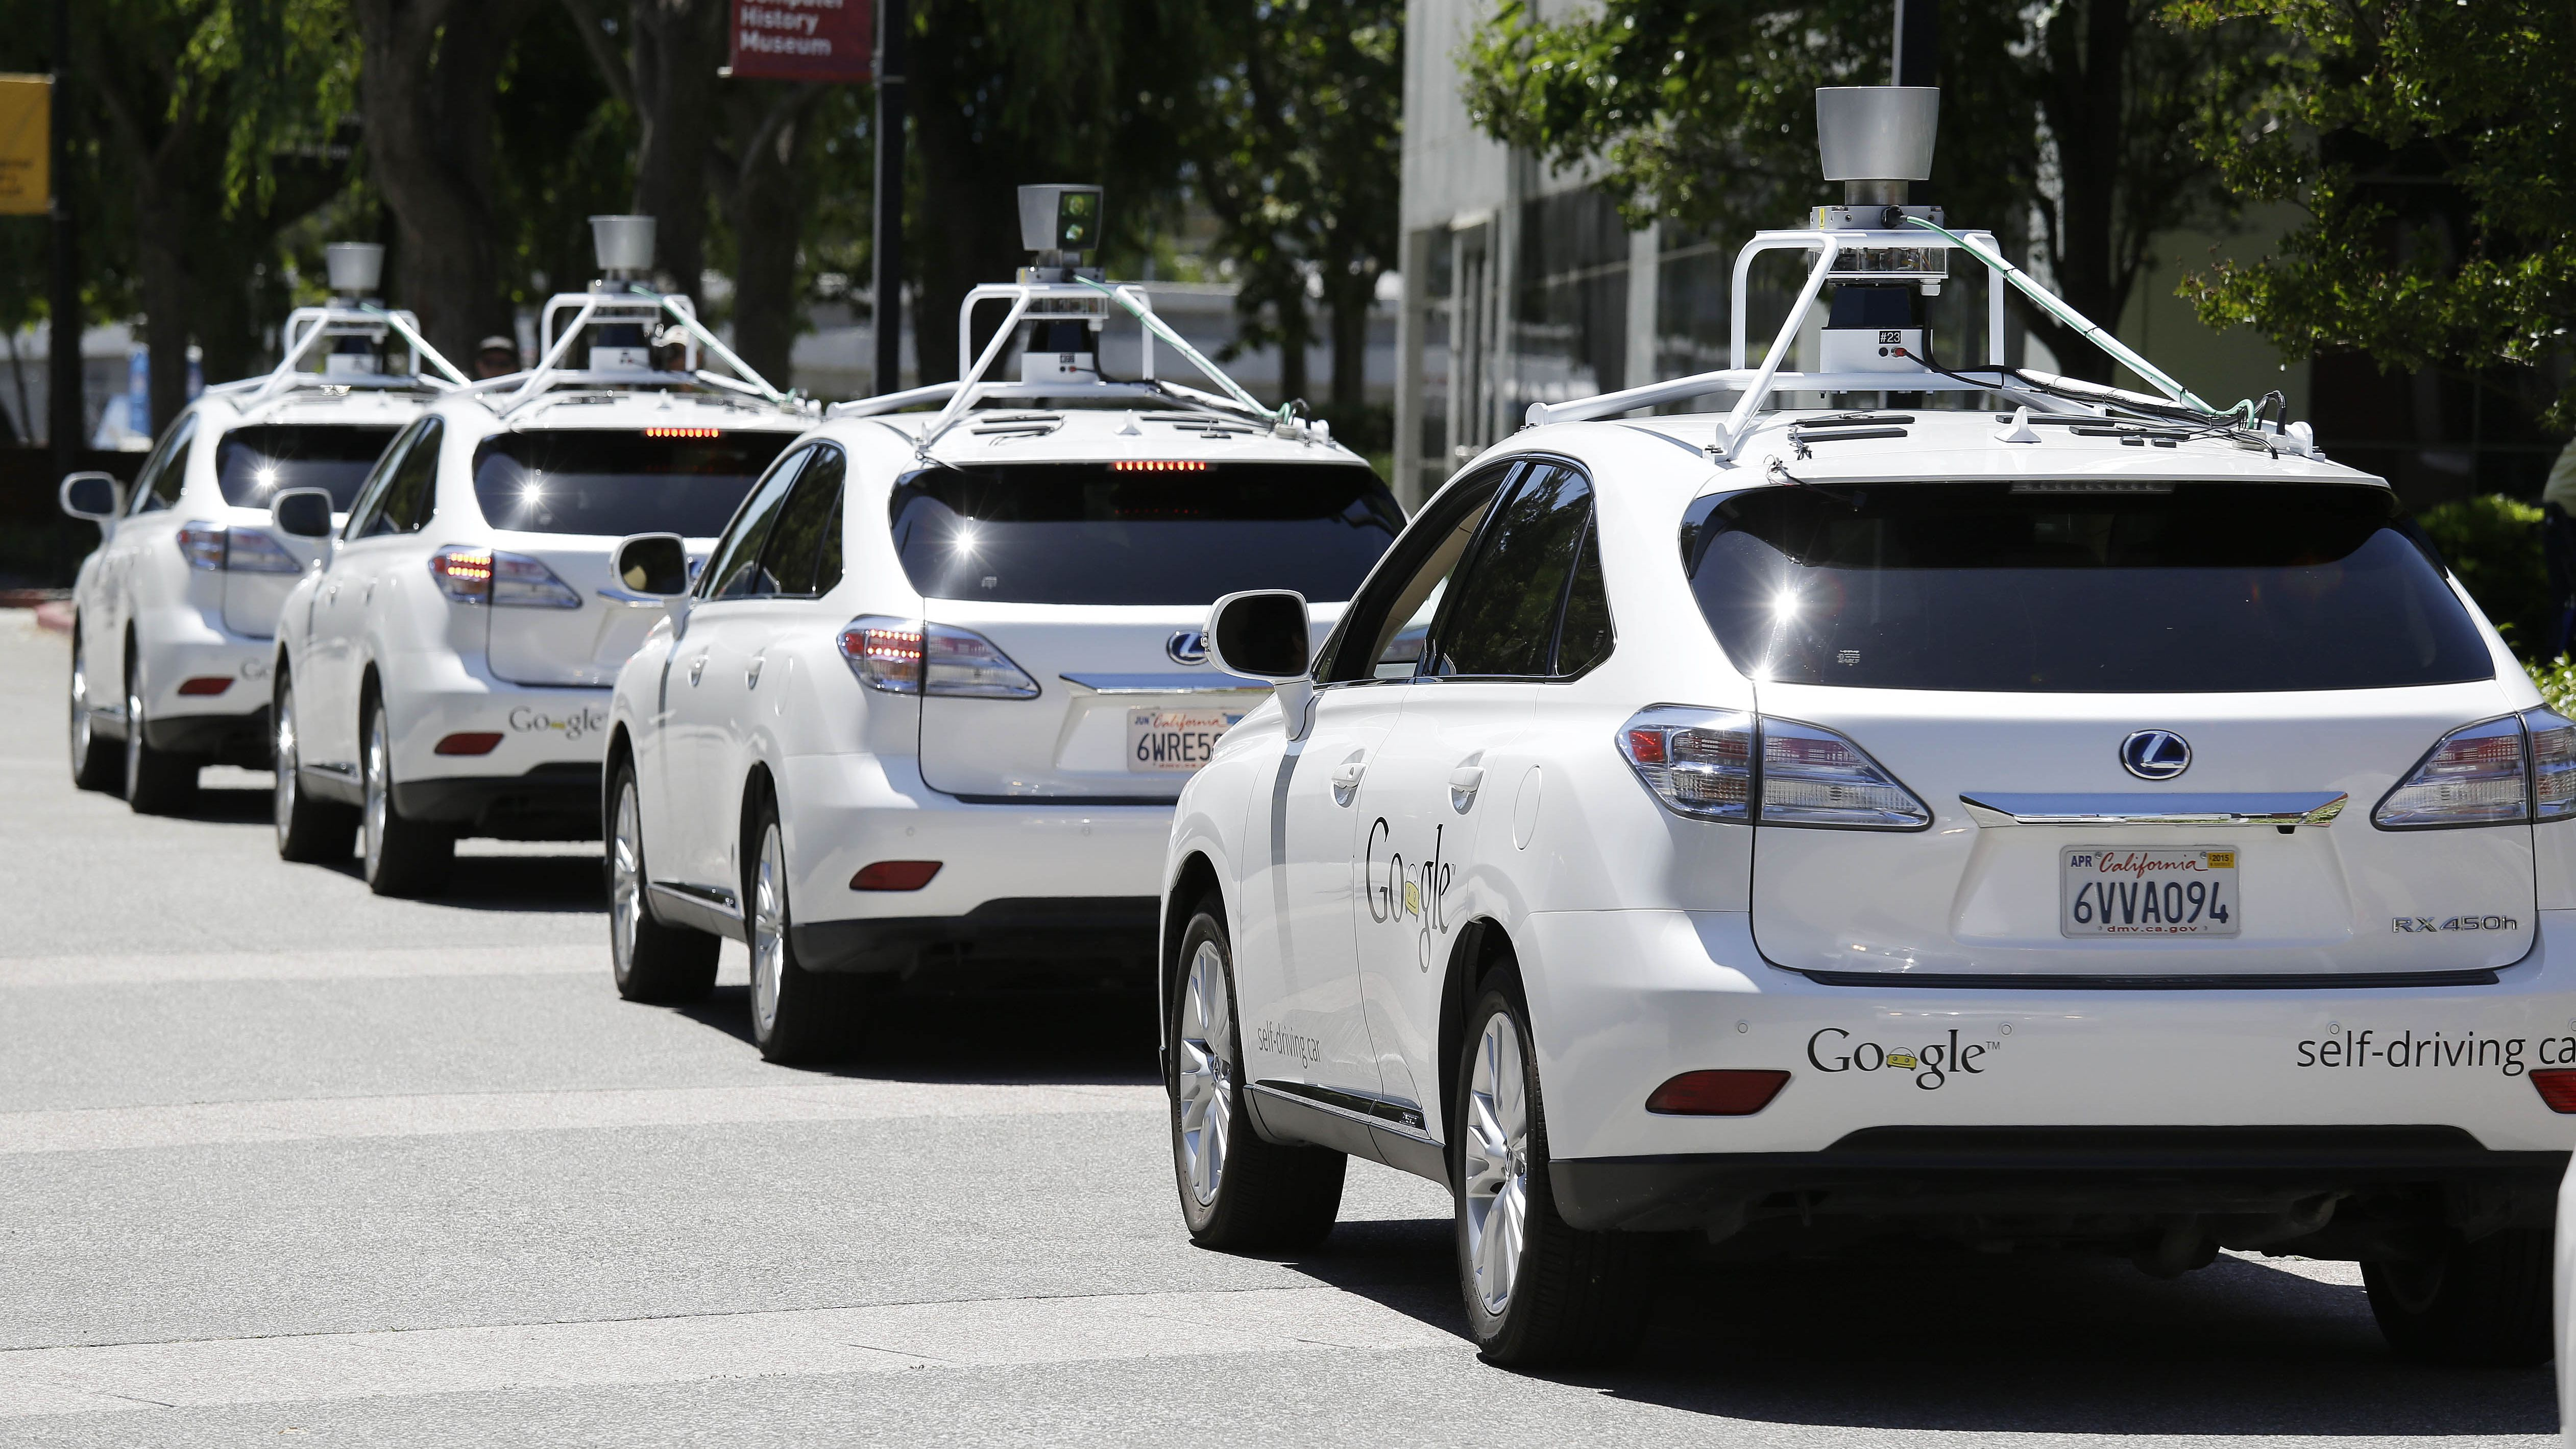 When will self-driving cars be on the road? — Quartz